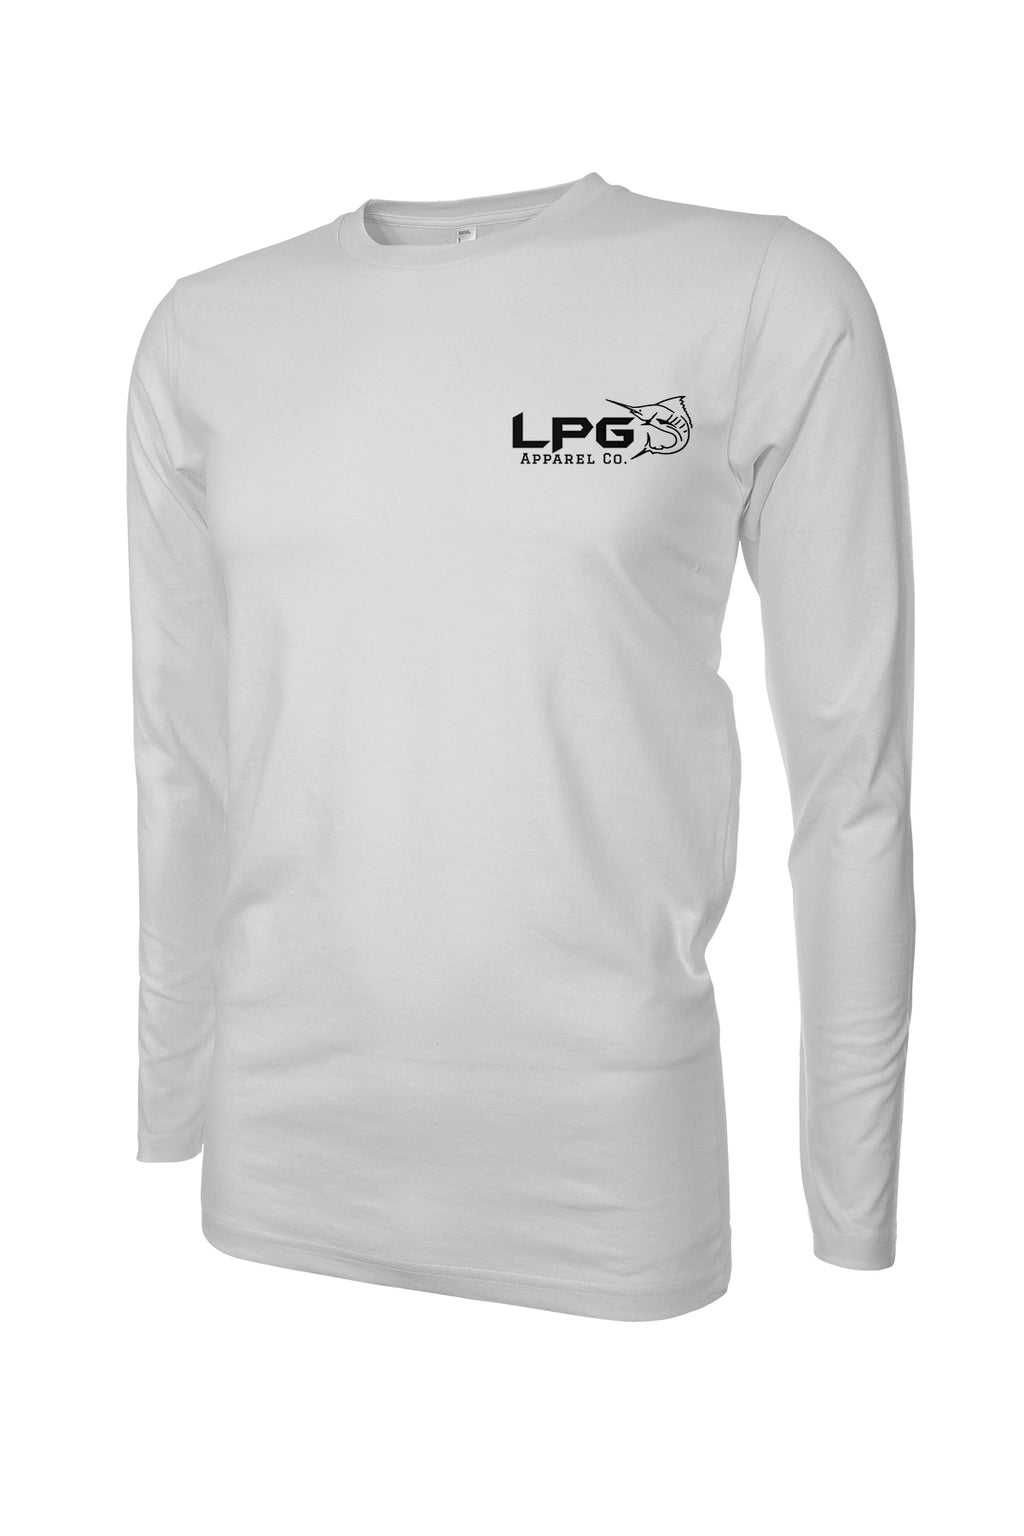 LPG Apparel Co. Mahi Tuna Marlin Mixed Bag LS Performance UPF 50+ Rashguard T-Shirt - Lobo Performance Gear